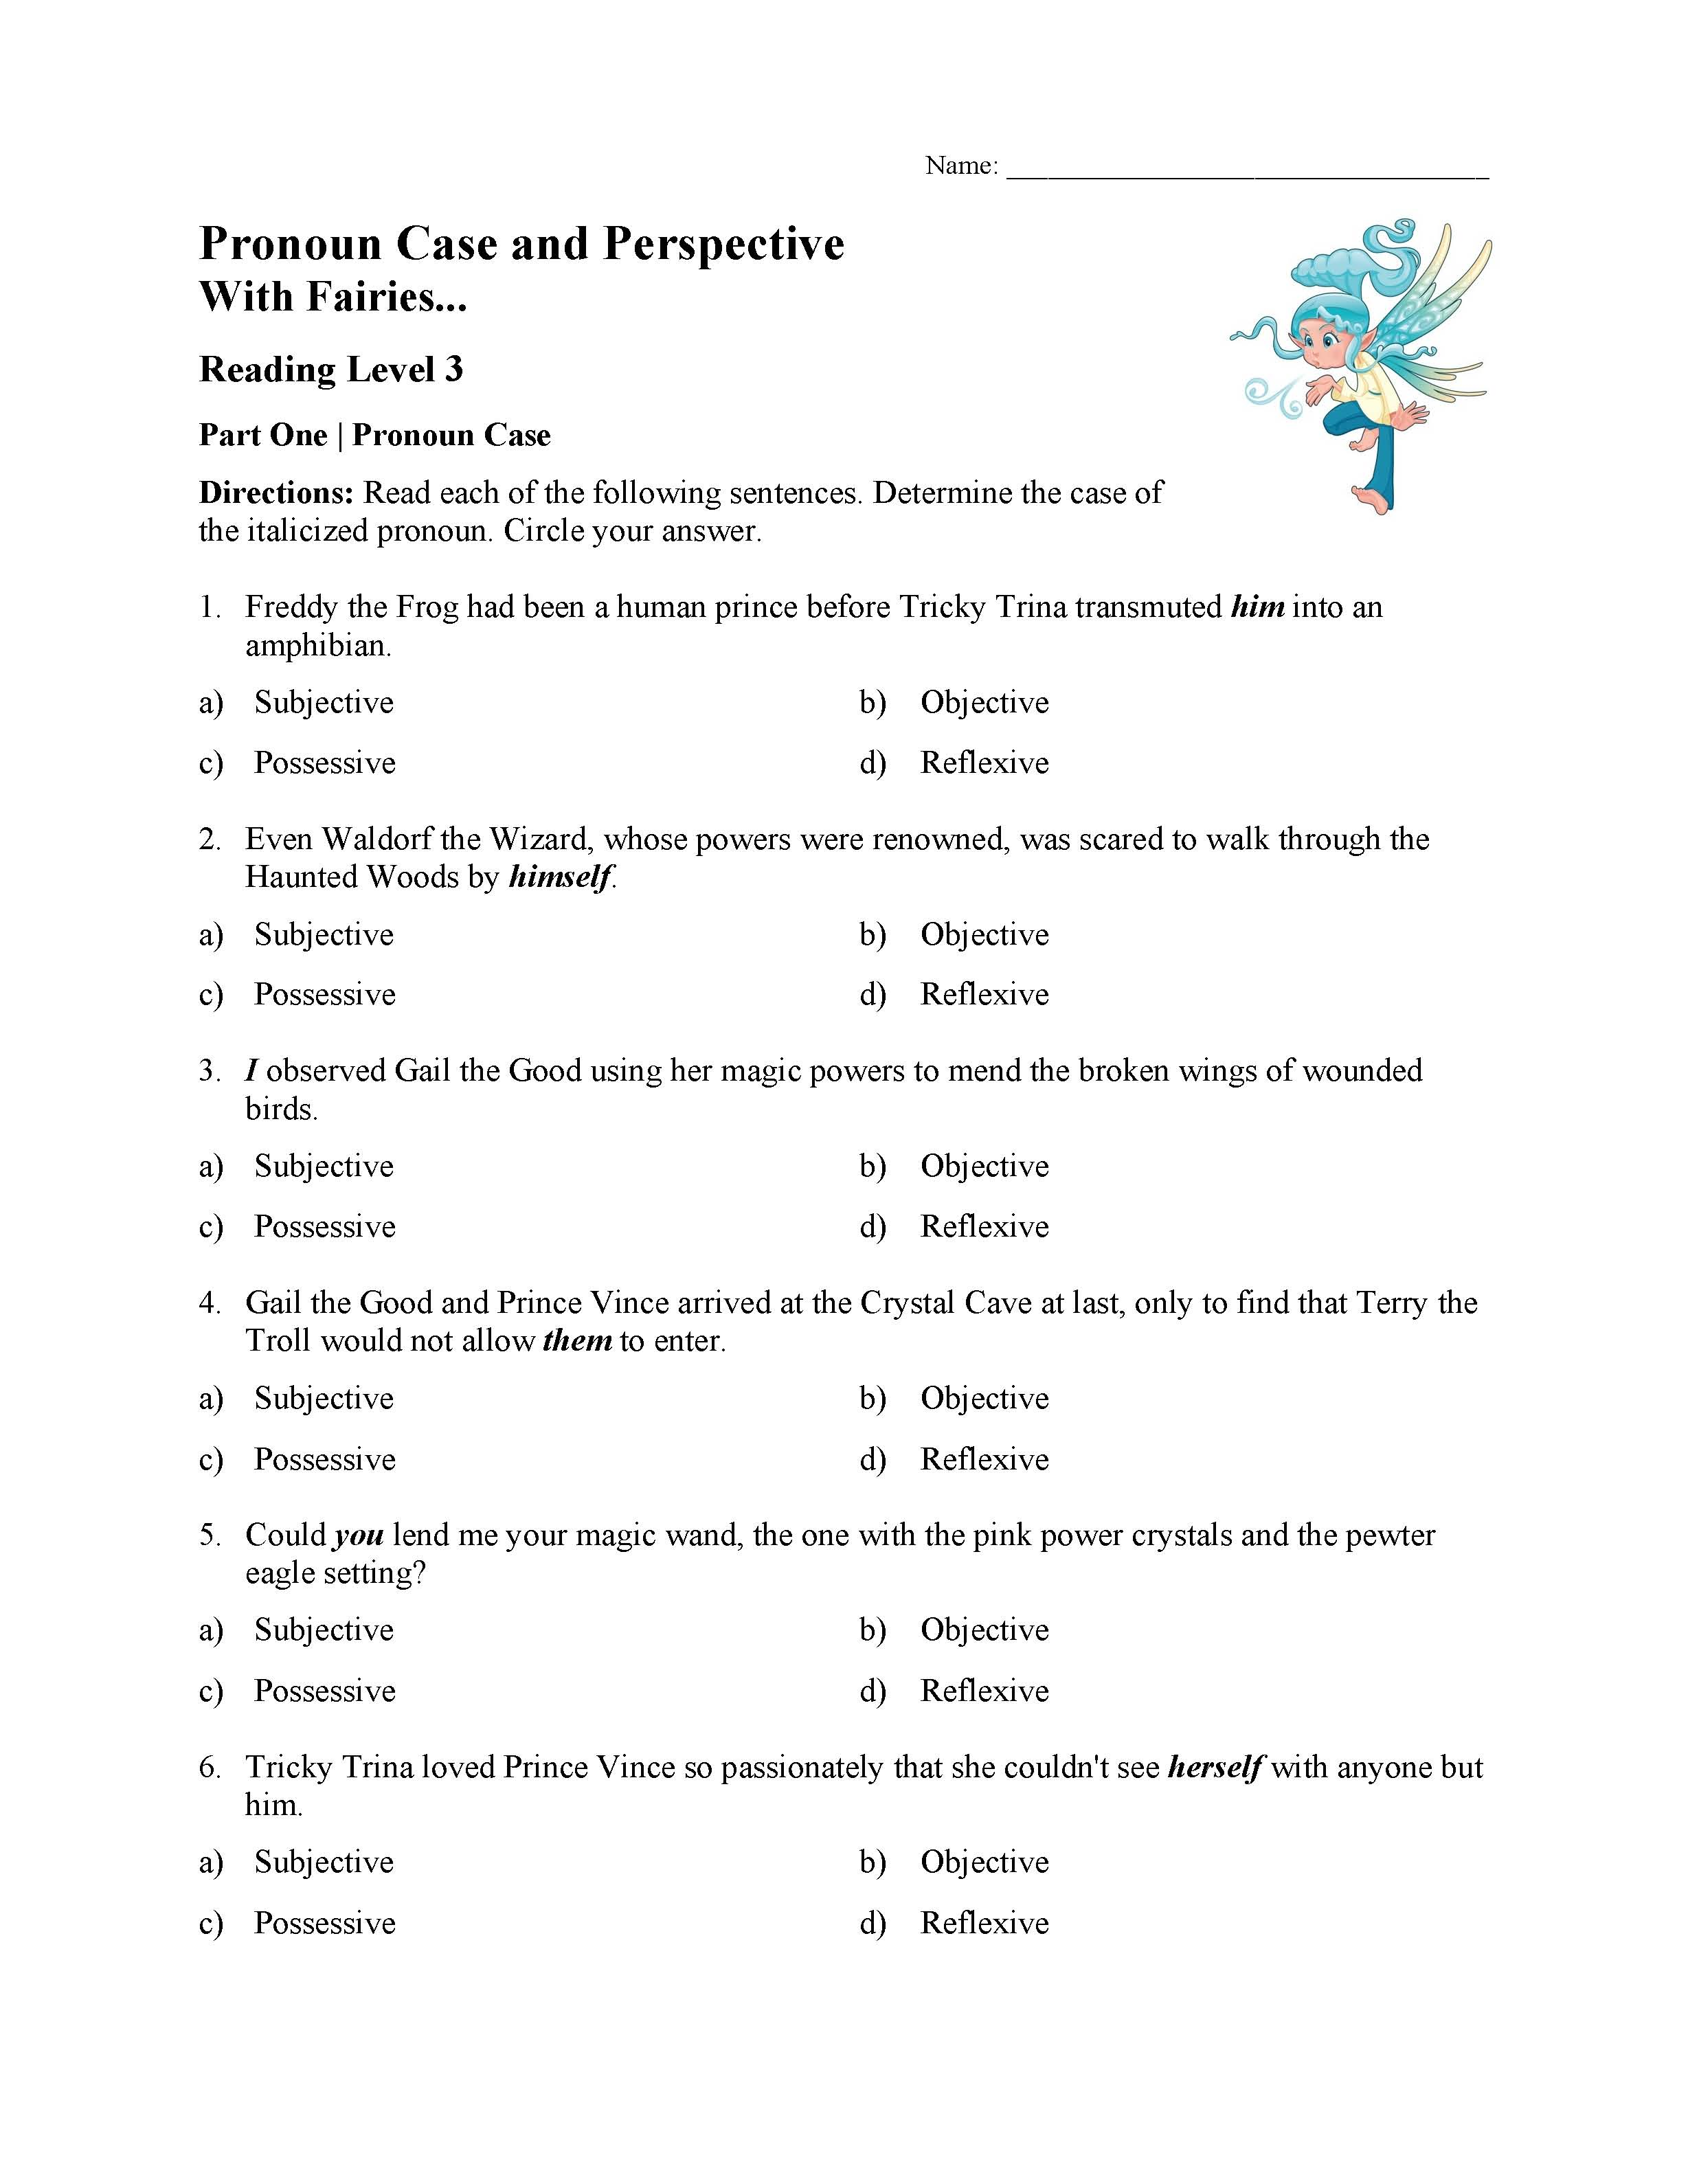 Perspective Pronouns Worksheet